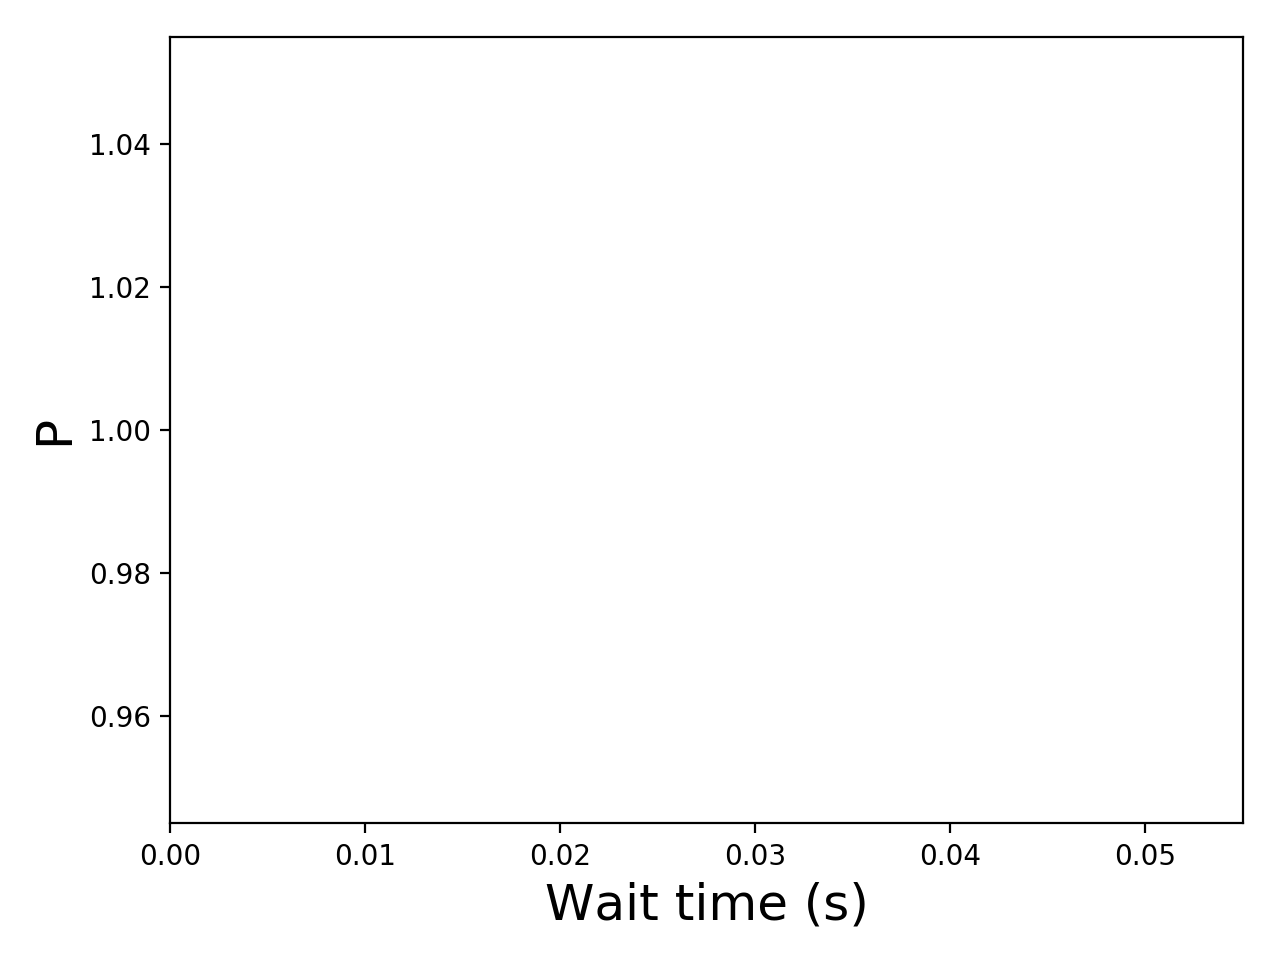 Task wait time CDF graph for the askalon-new_ee30 trace.